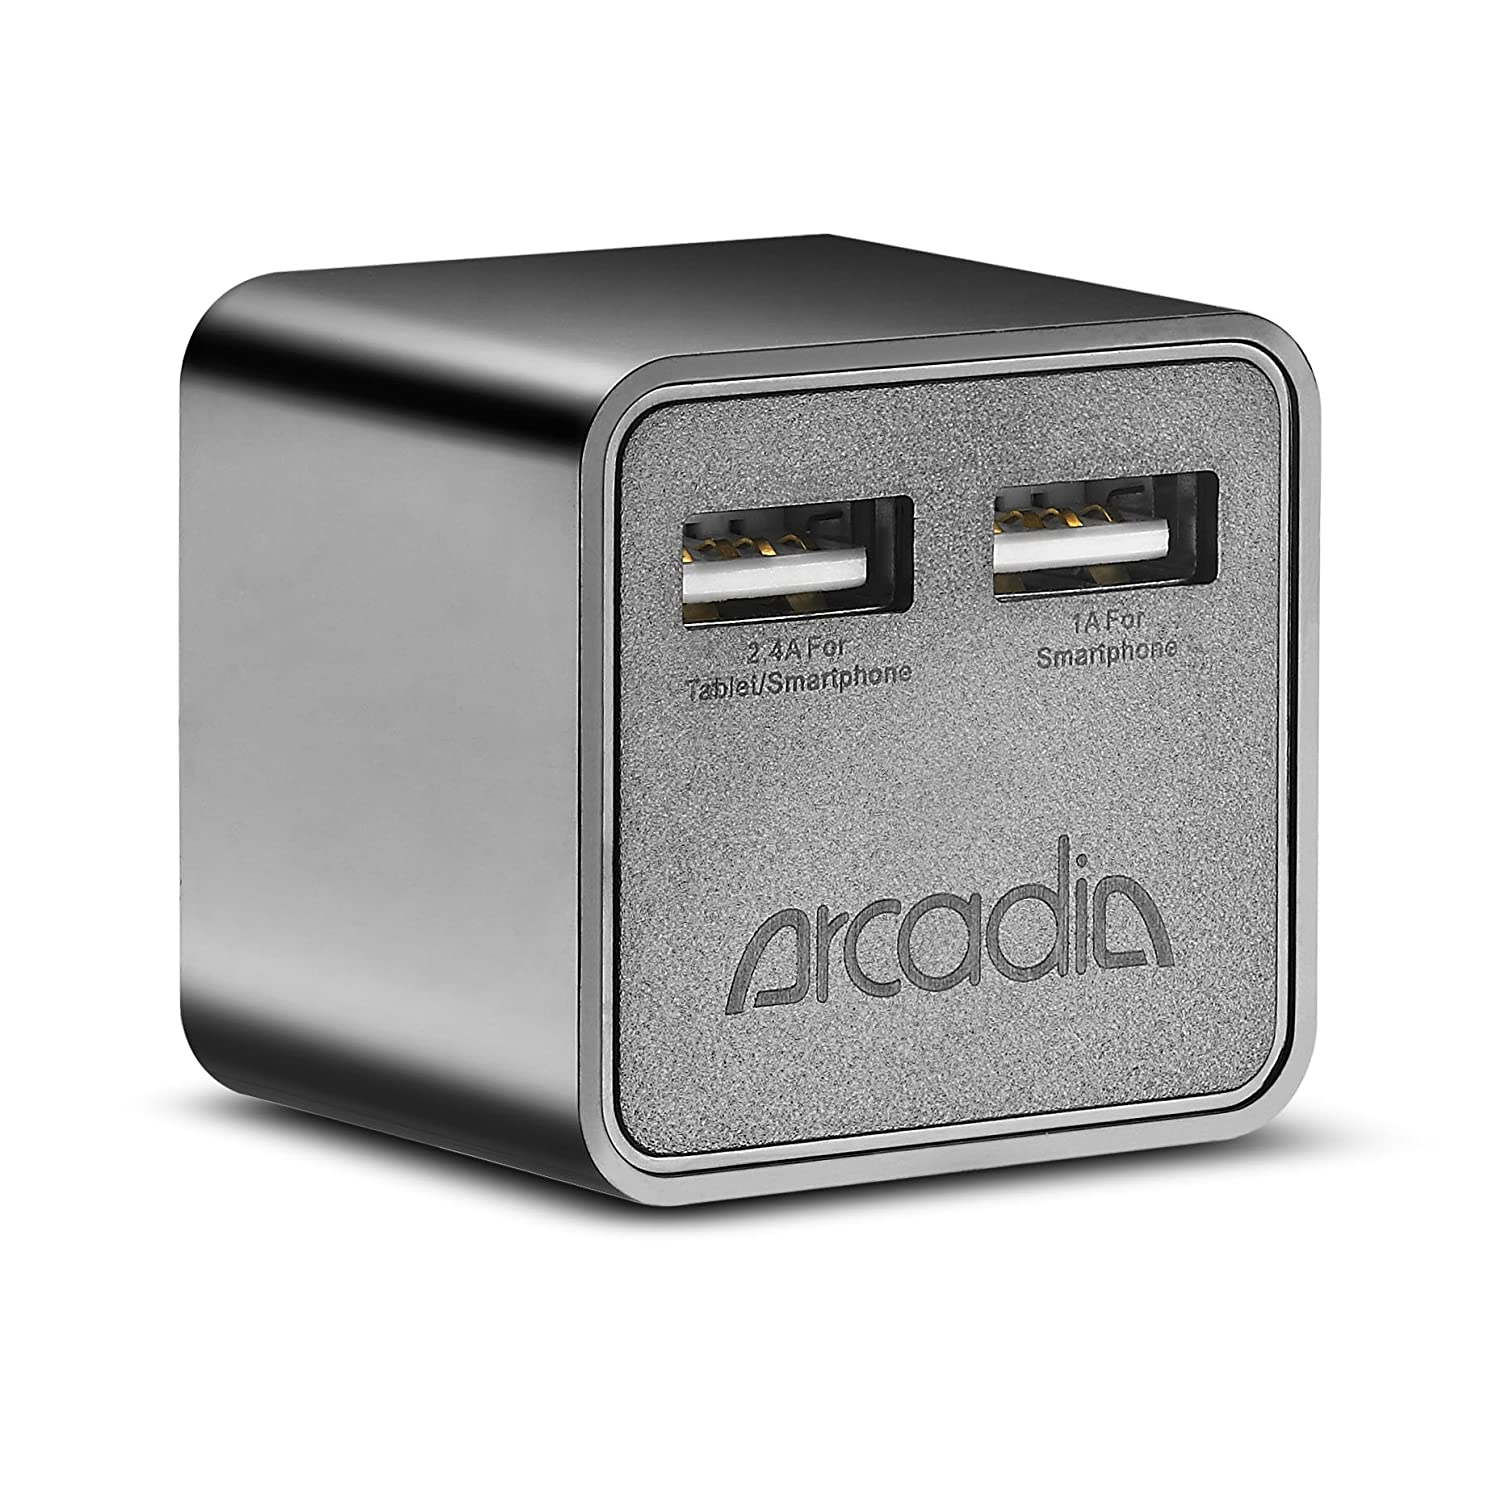 Wall Charger, Arcadia NT90C 17W 5V/3.4A (Dual USB Ports) (High-Speed) AC Wall Charger with (Foldable Prong) for most of the Smartphones, iPhone 6, iPhone 6 Plus, Galaxy S5,.. 5V Tablets, iPad Air, iPad 2/3/4,.. and more